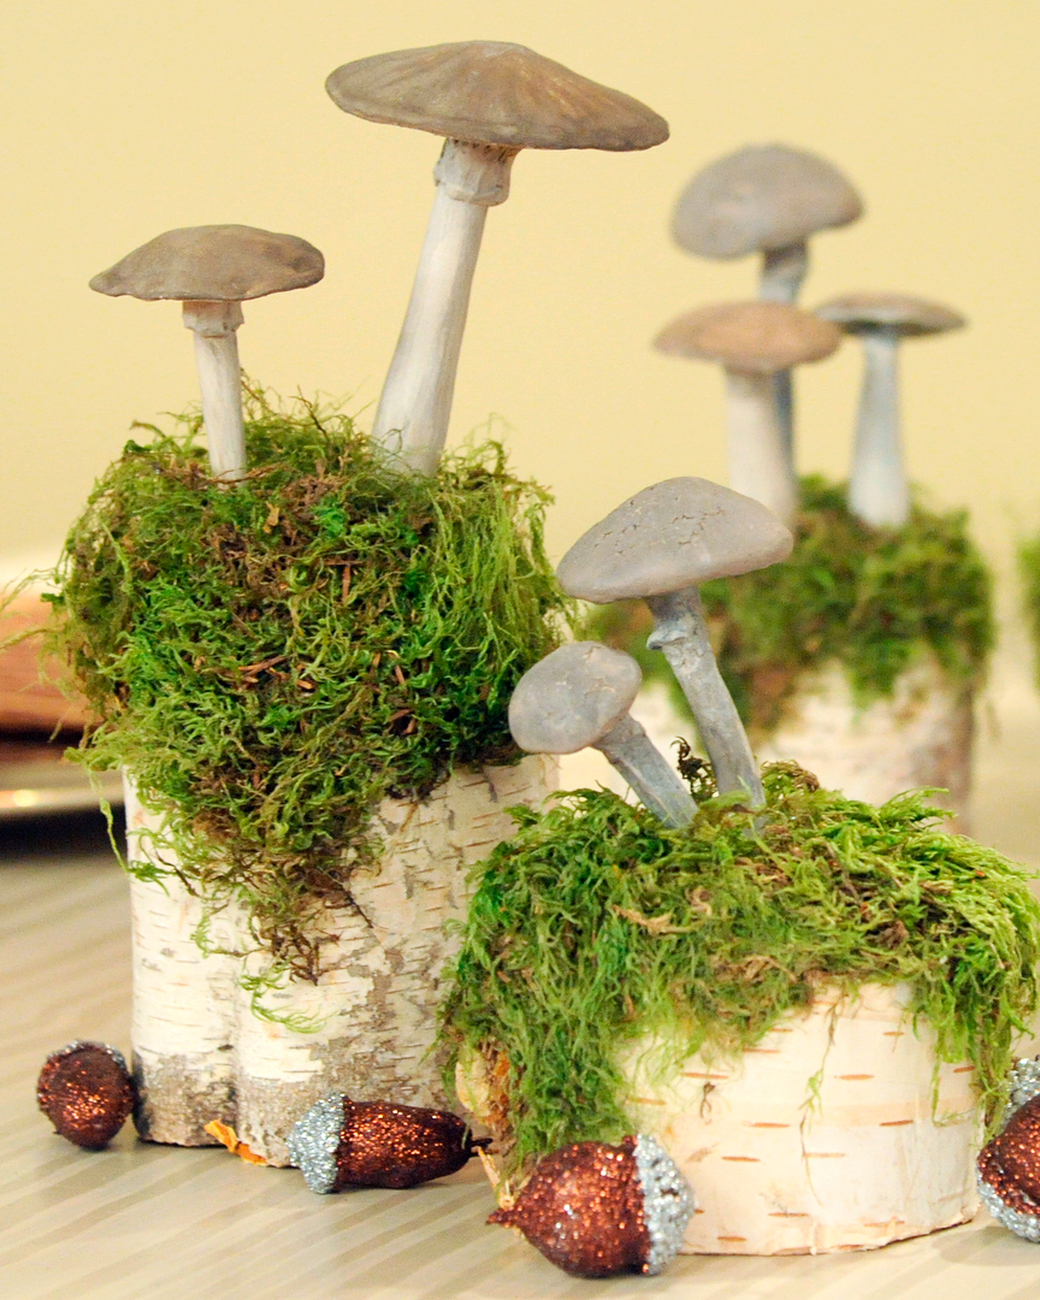 Diy clay mushrooms